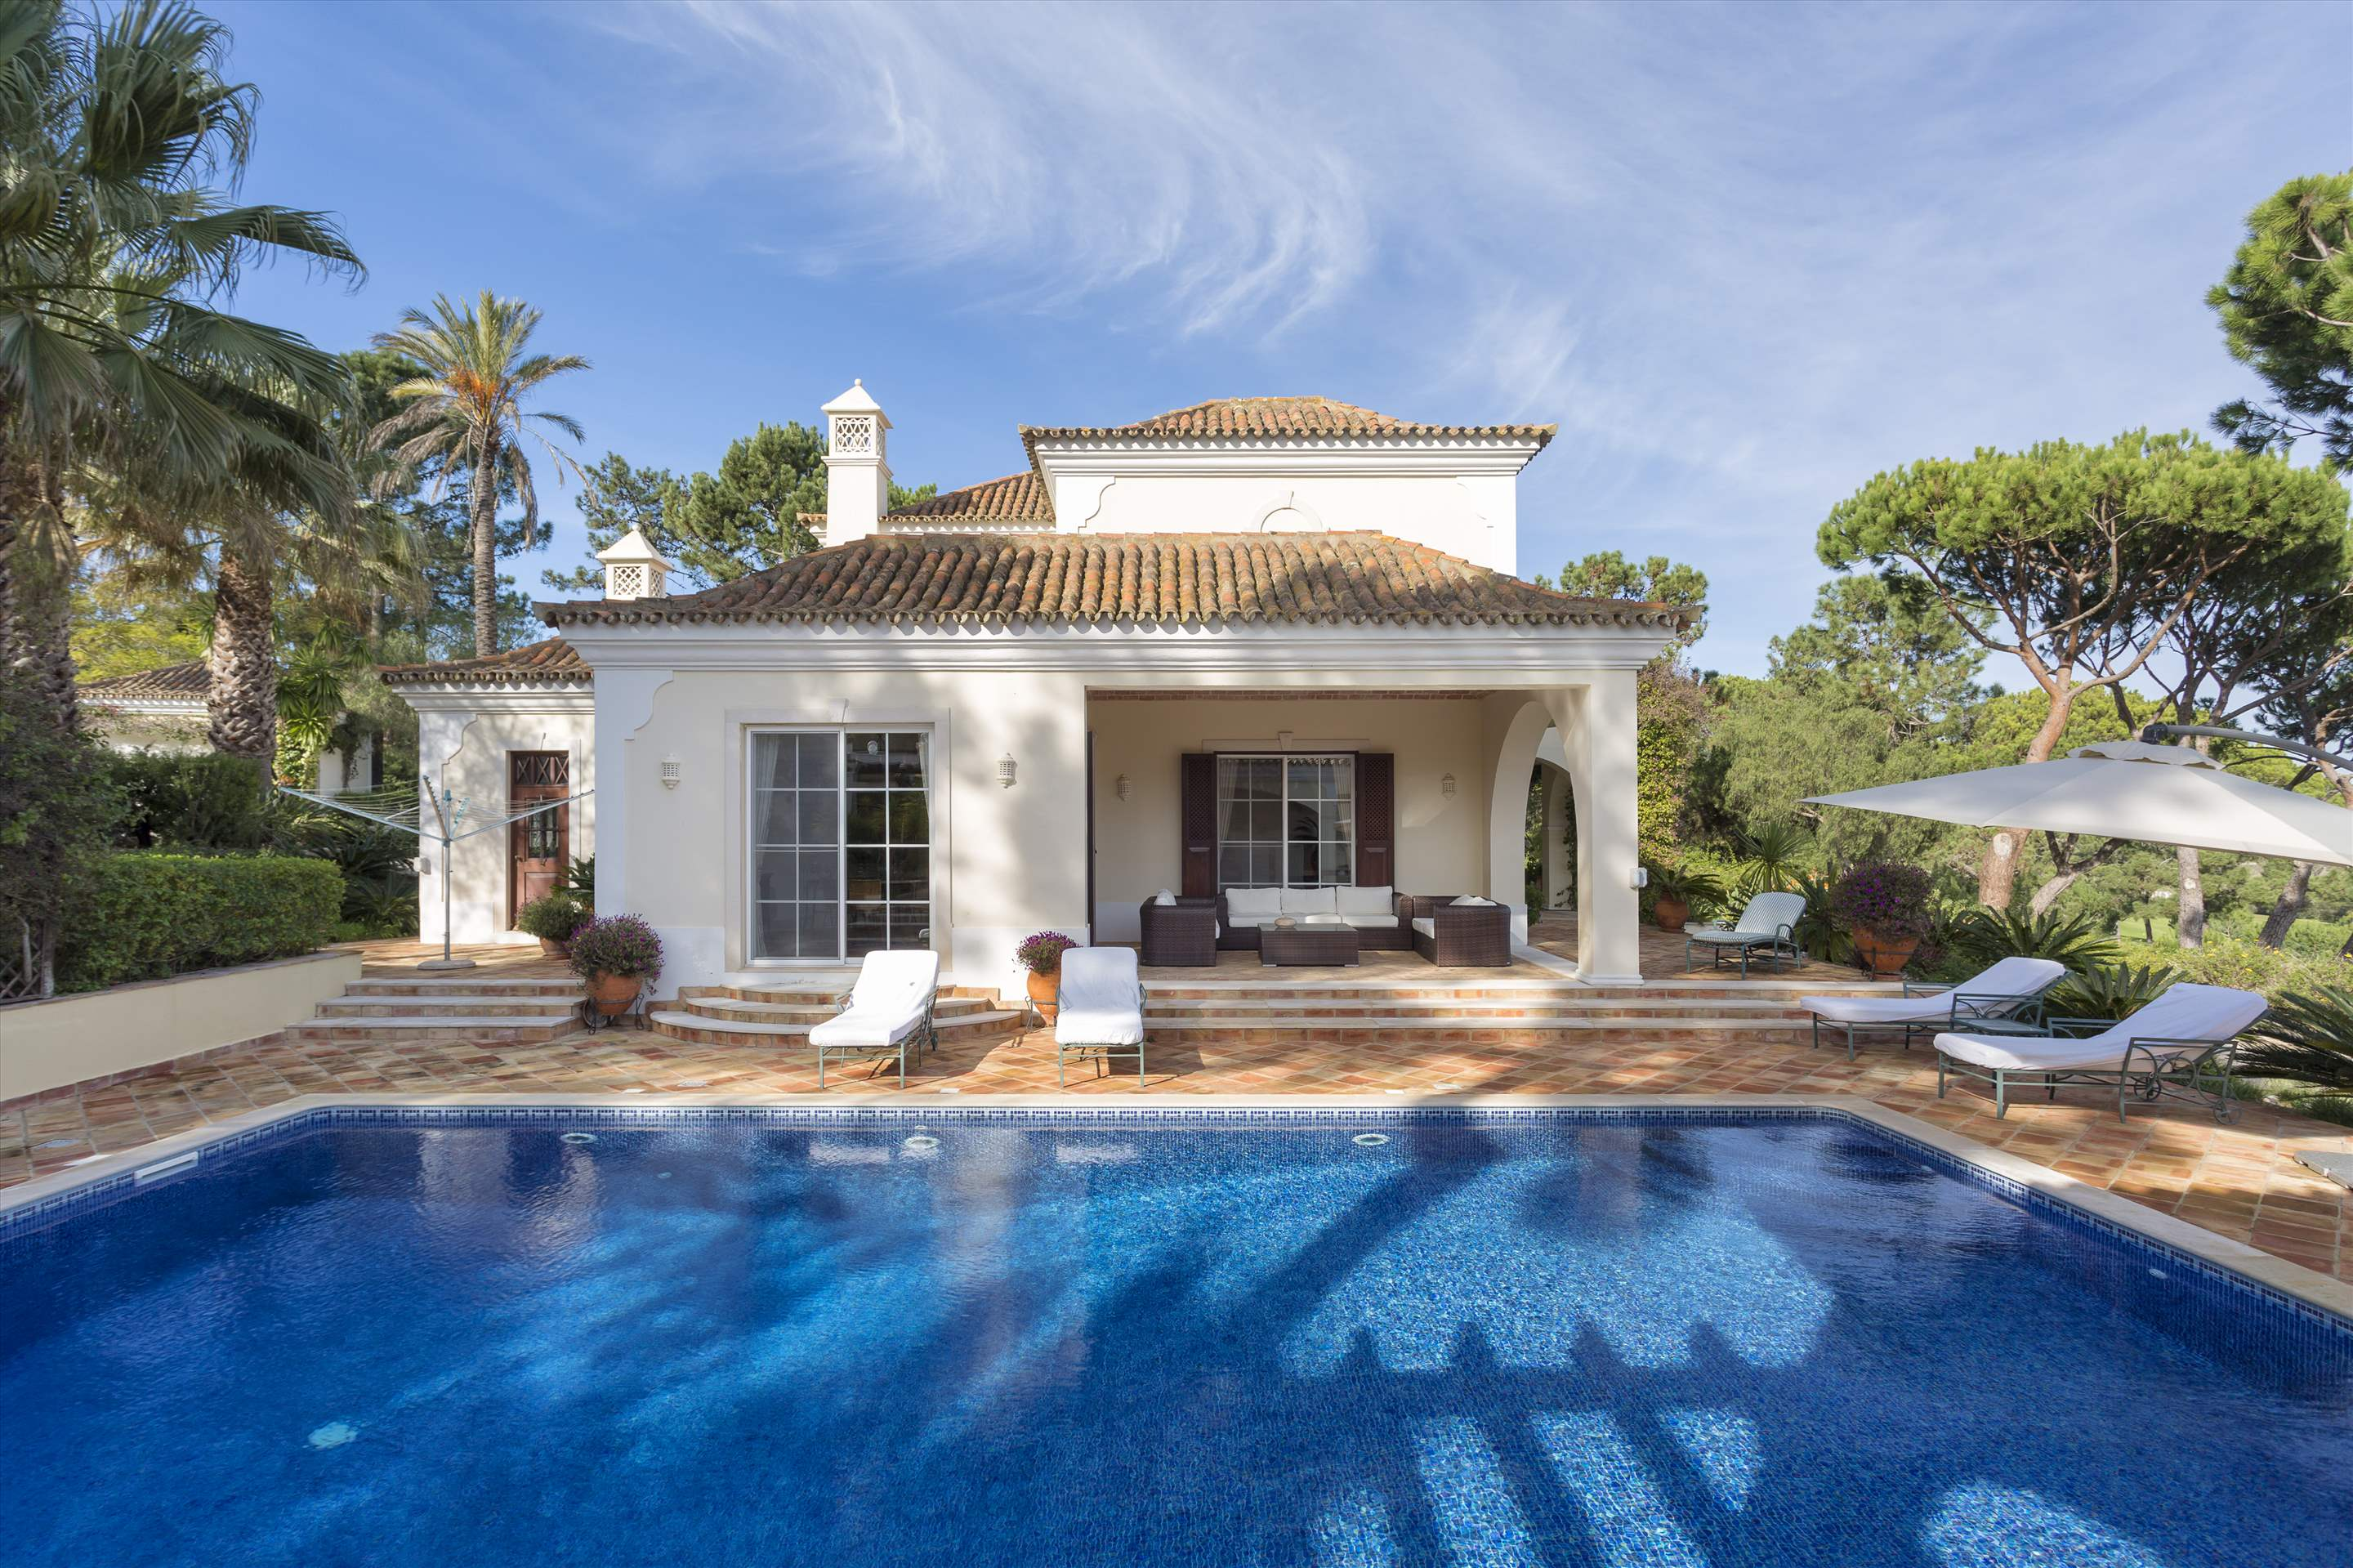 Villa Palmeiras Altas, 5 bedroom villa in Quinta do Lago, Algarve Photo #42